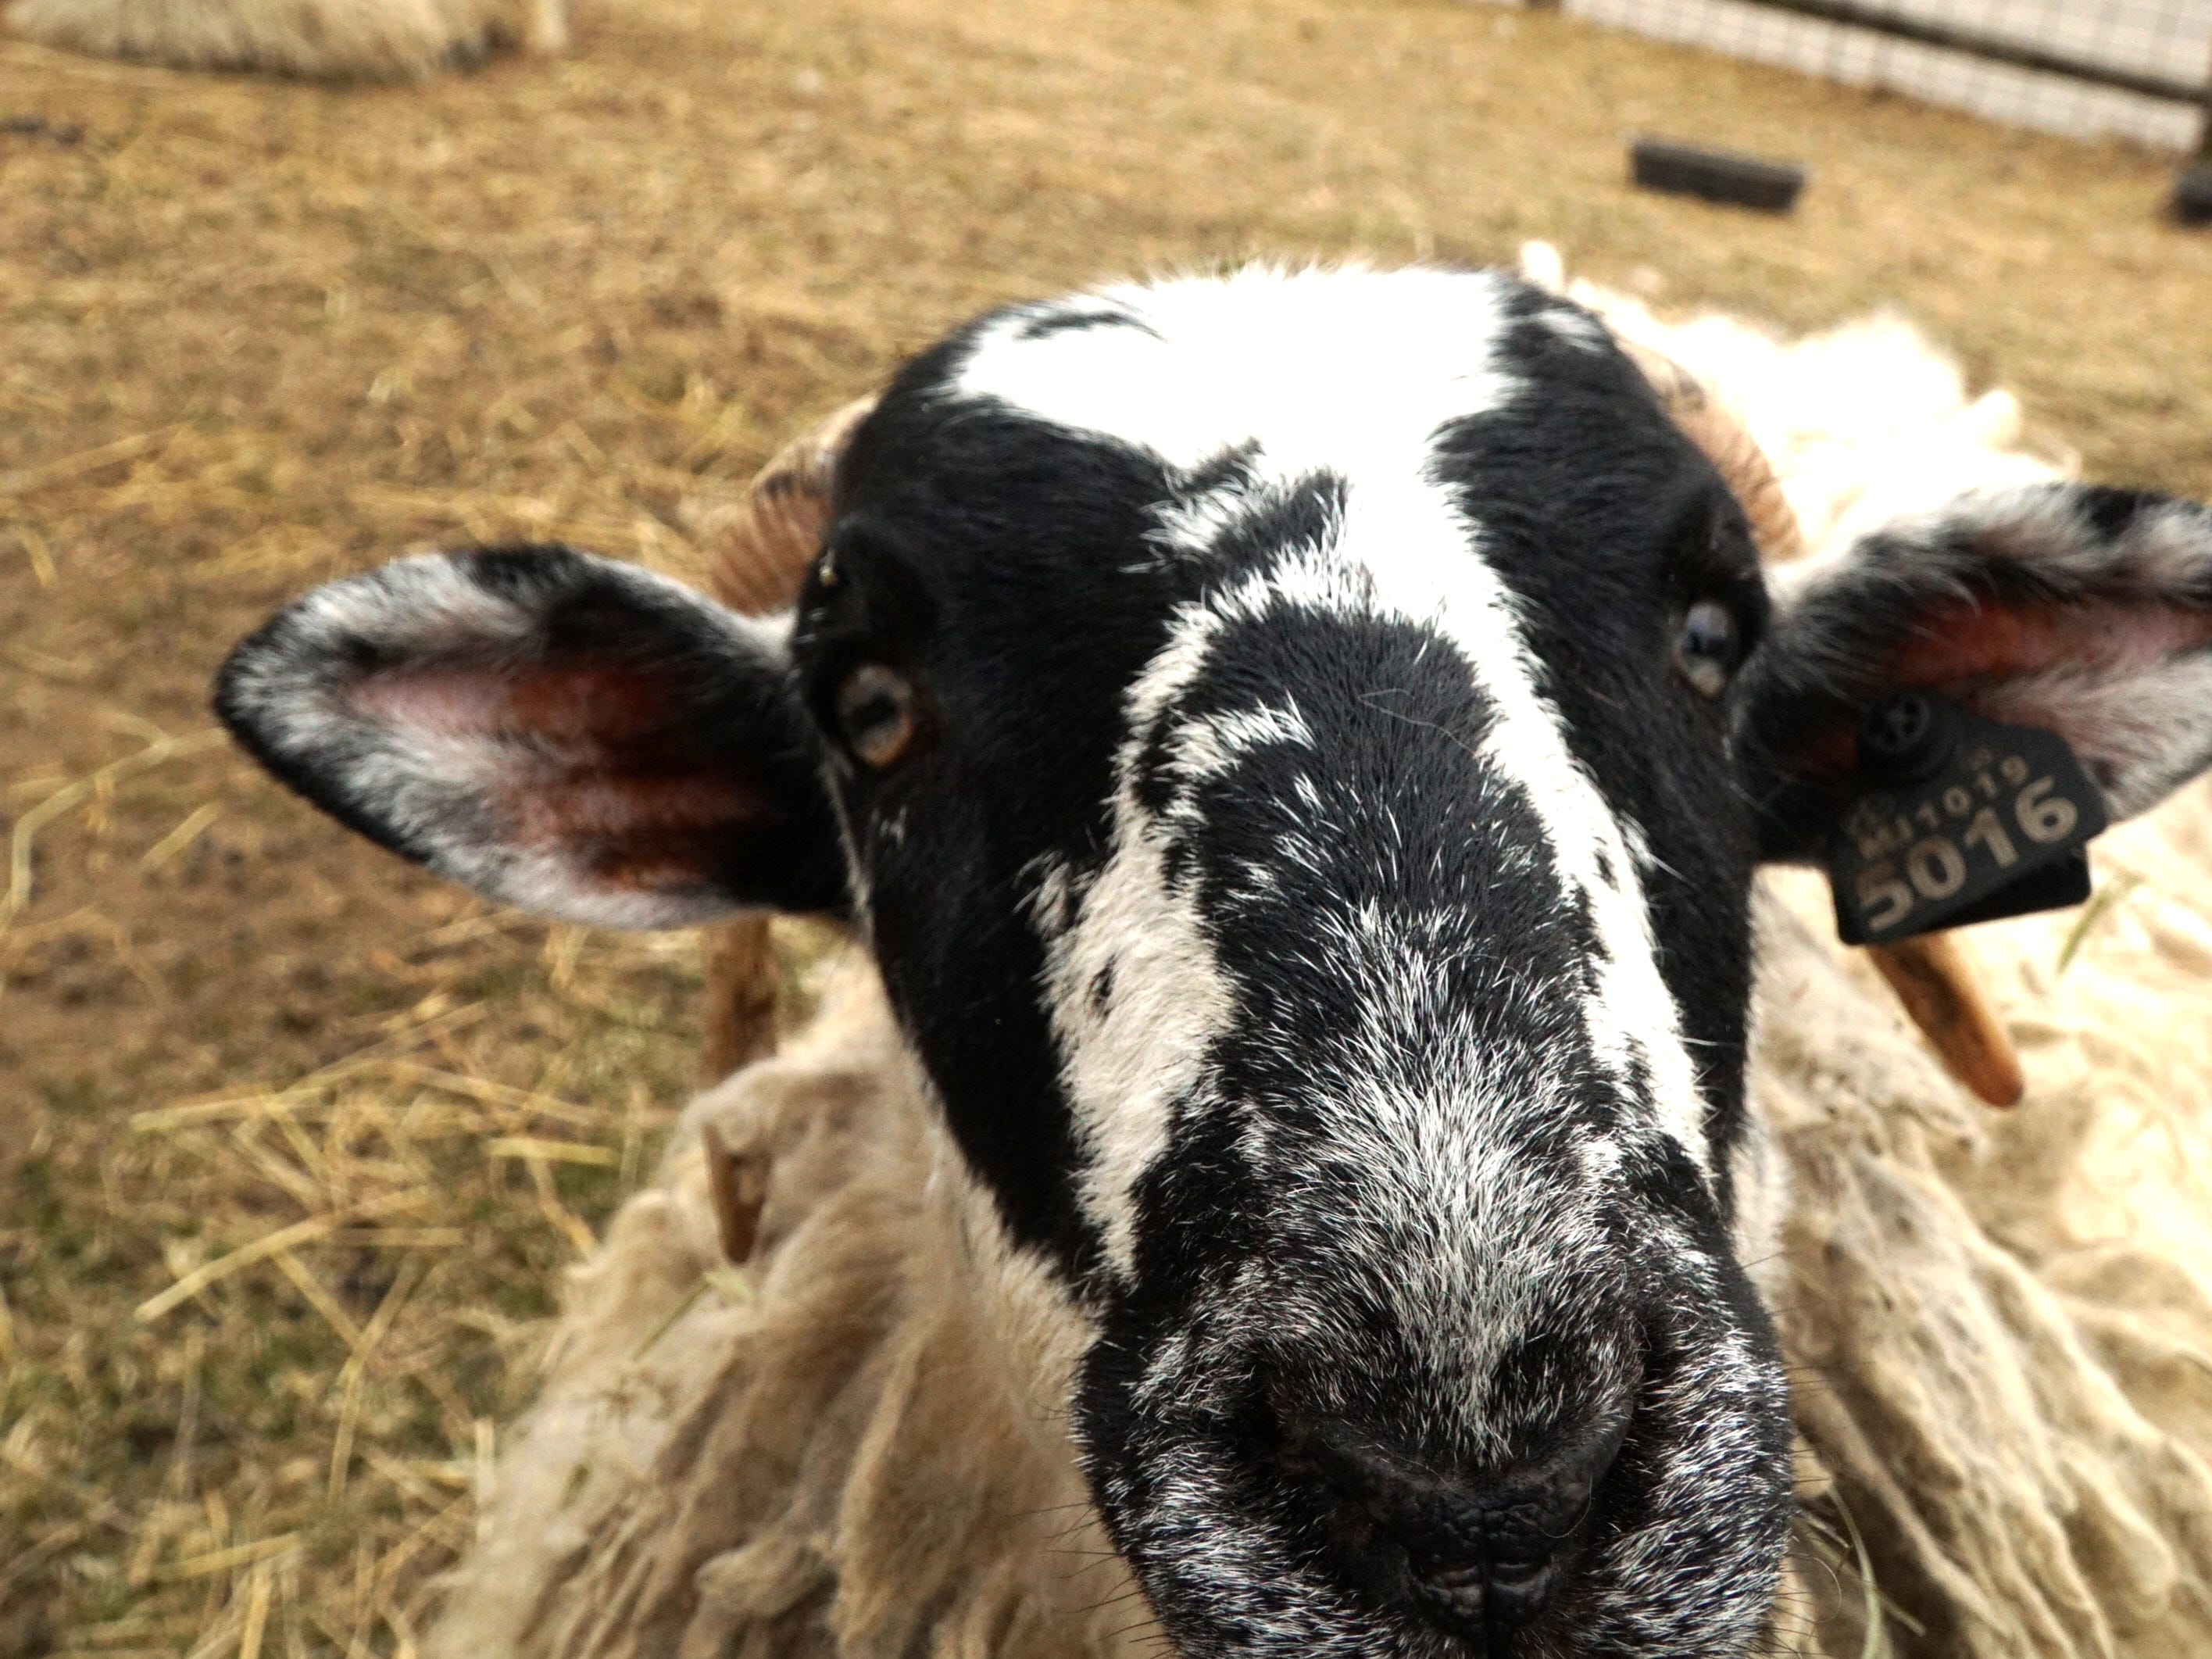 A sheep checks out a visitor's camera on March 19 at Kensington Farm Center. The center is located inside Kensington Metropark at 4570 Huron River Parkway, Milford, MI.